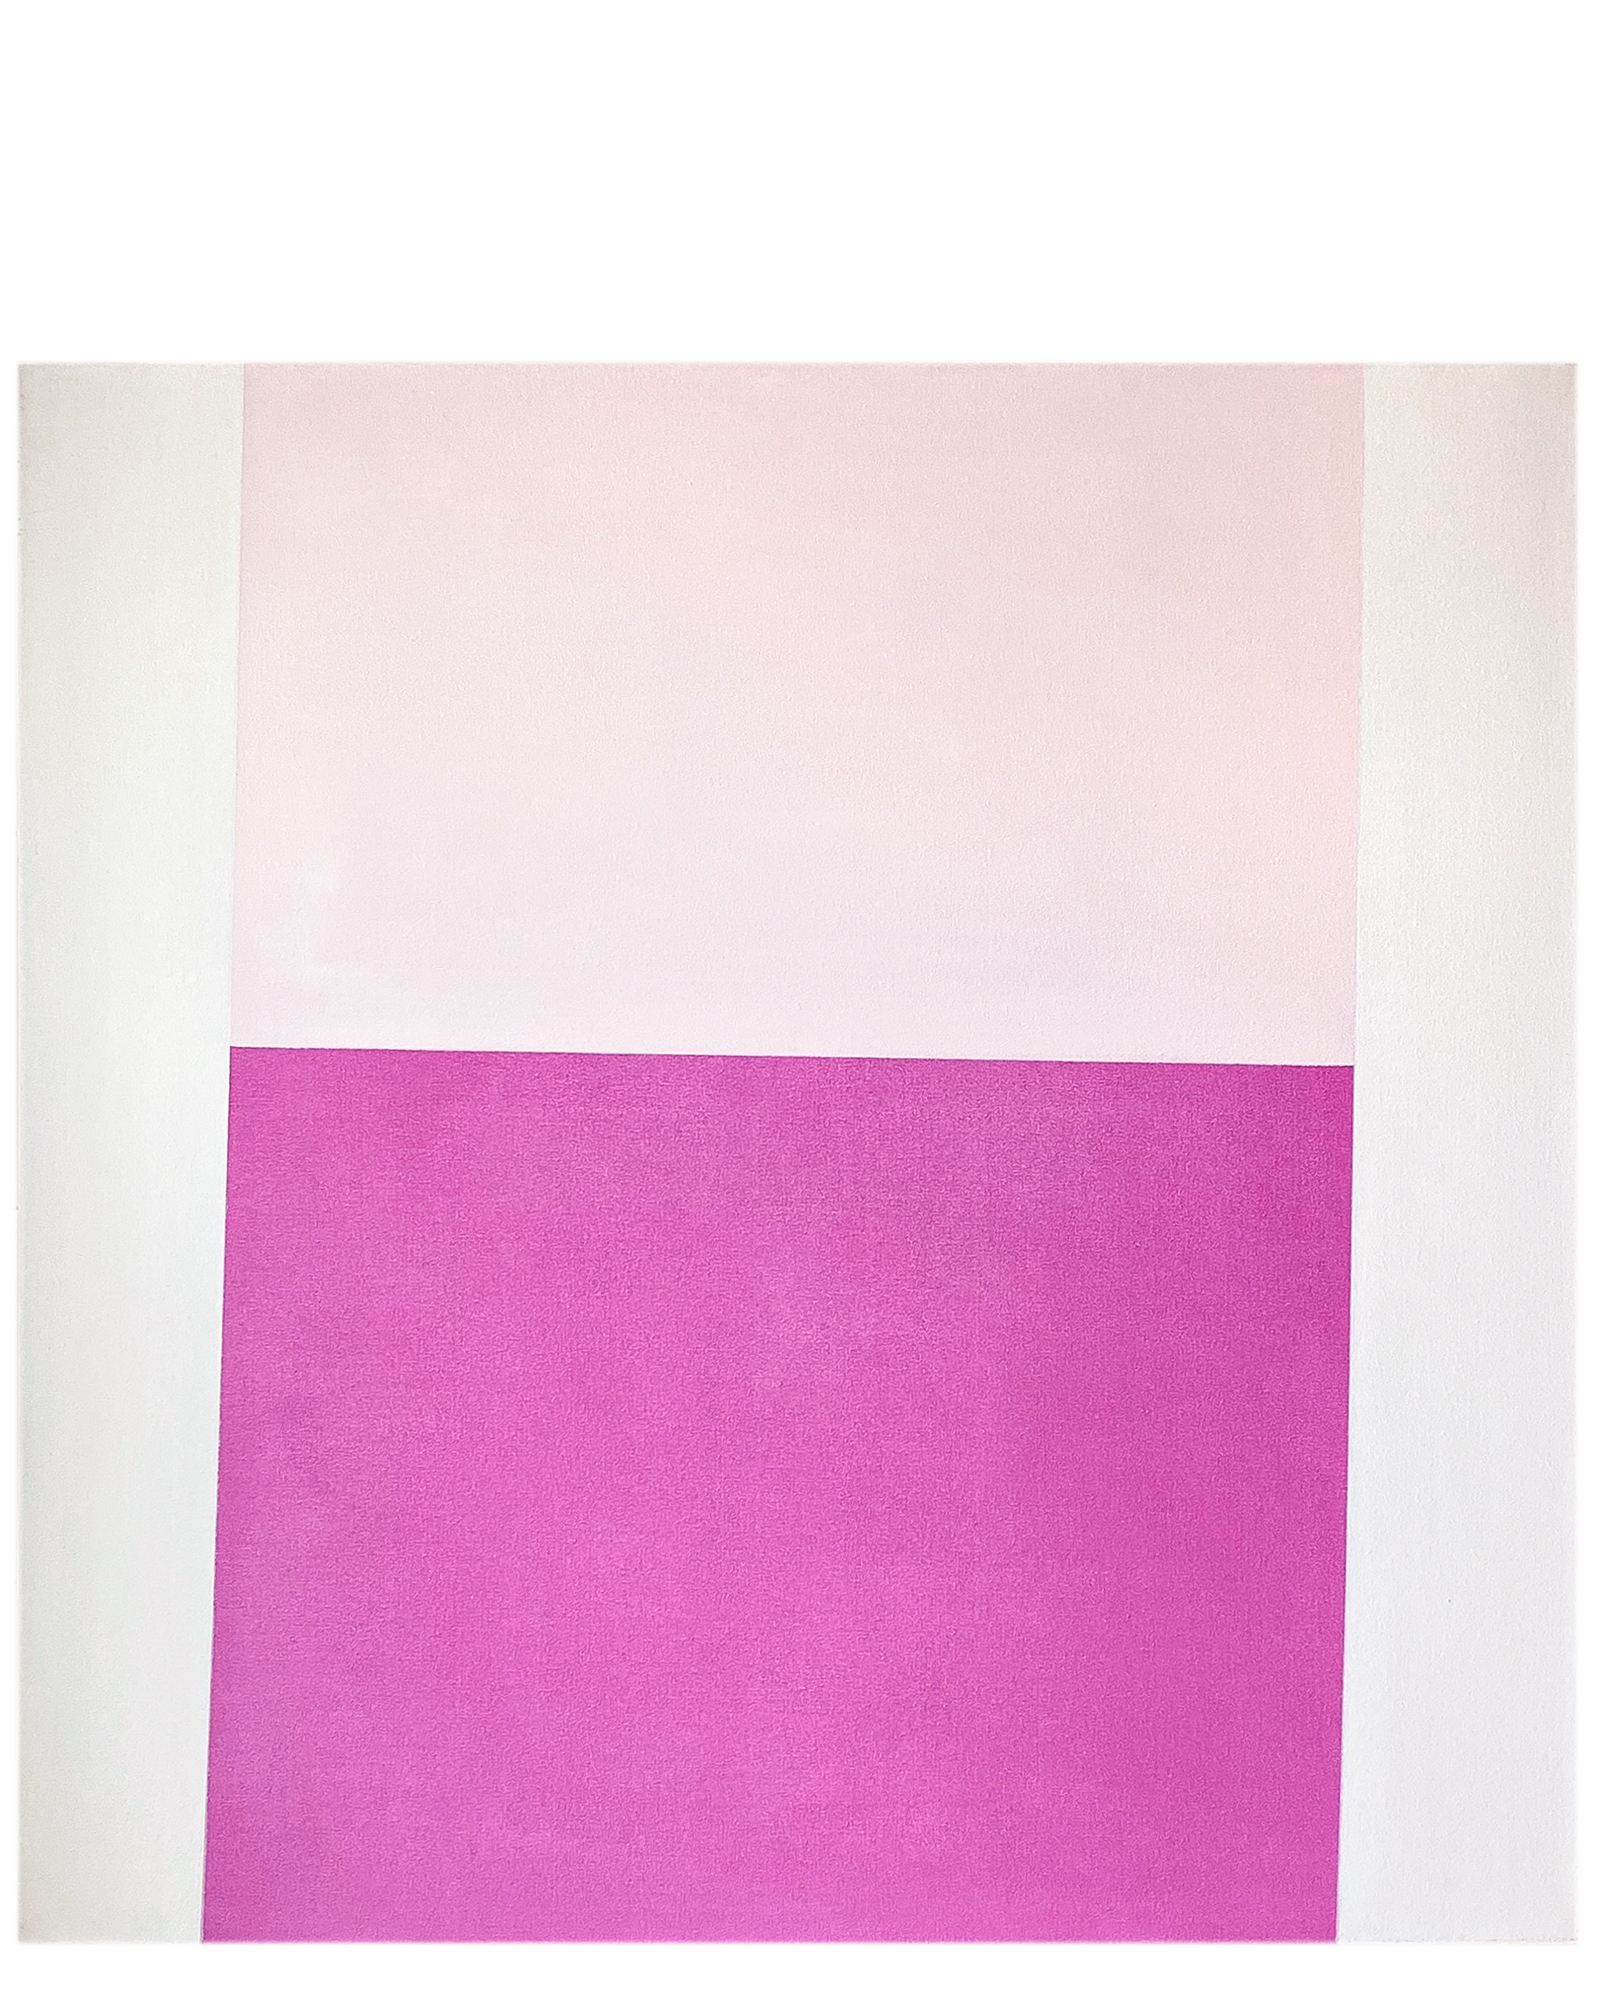 """""""Two-Tone, Pinks"""" by Laurie Fisher,"""